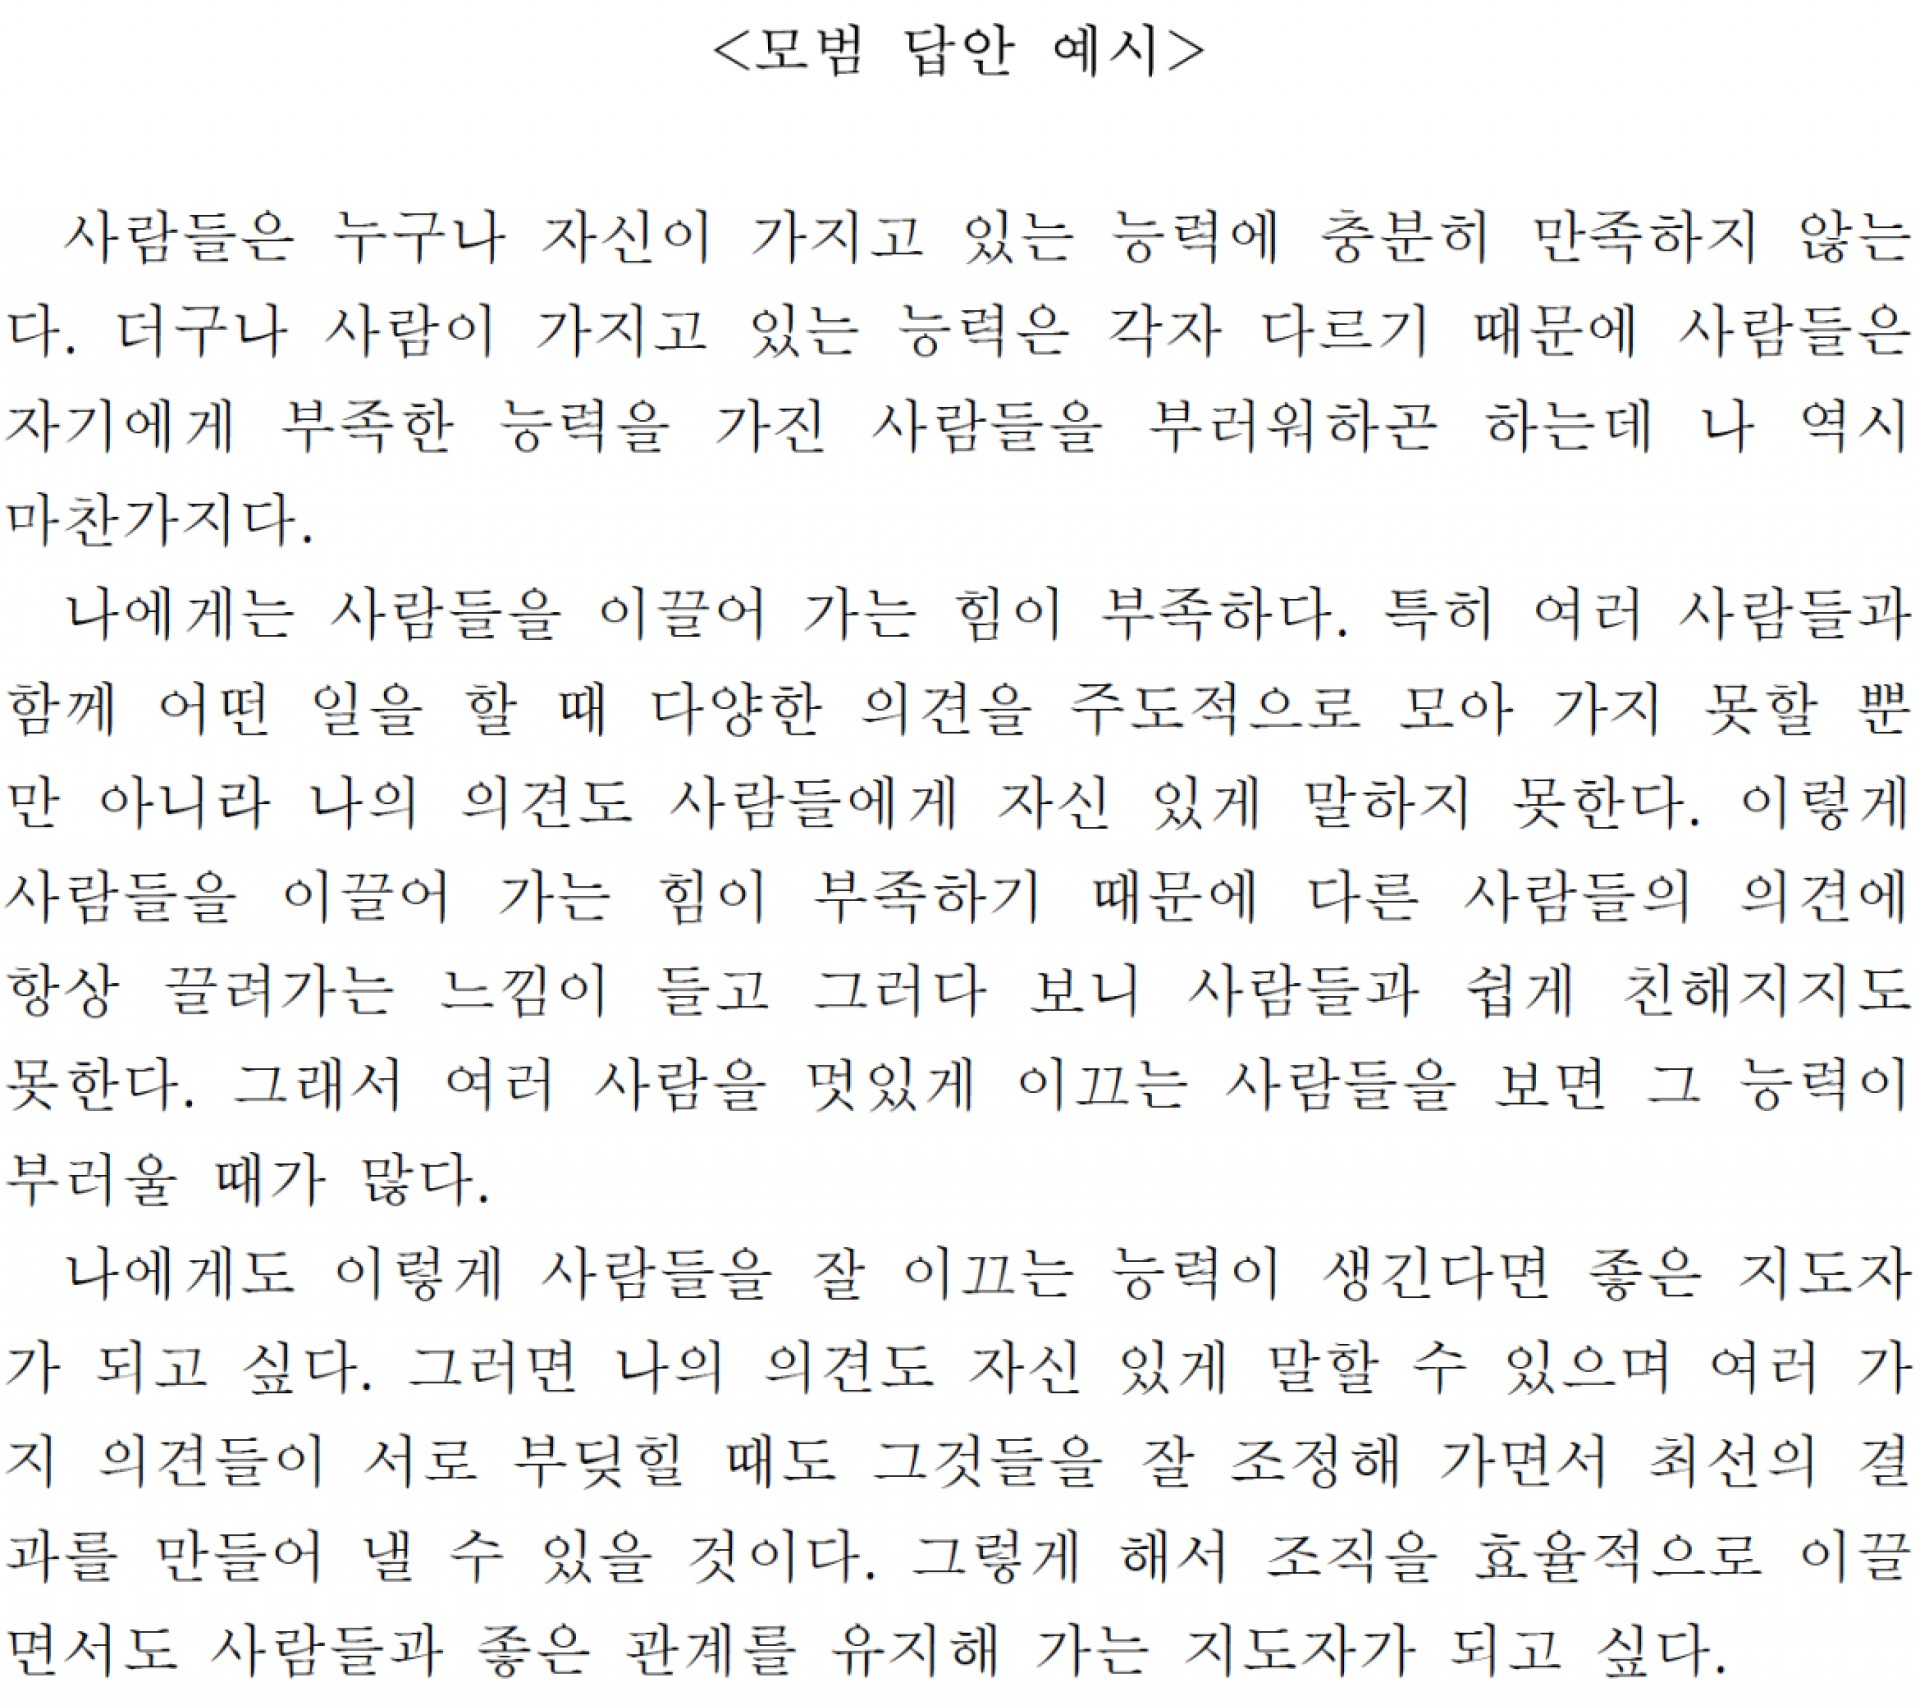 002 Essay Example Korean Stirring Examples About Myself Contest 1920